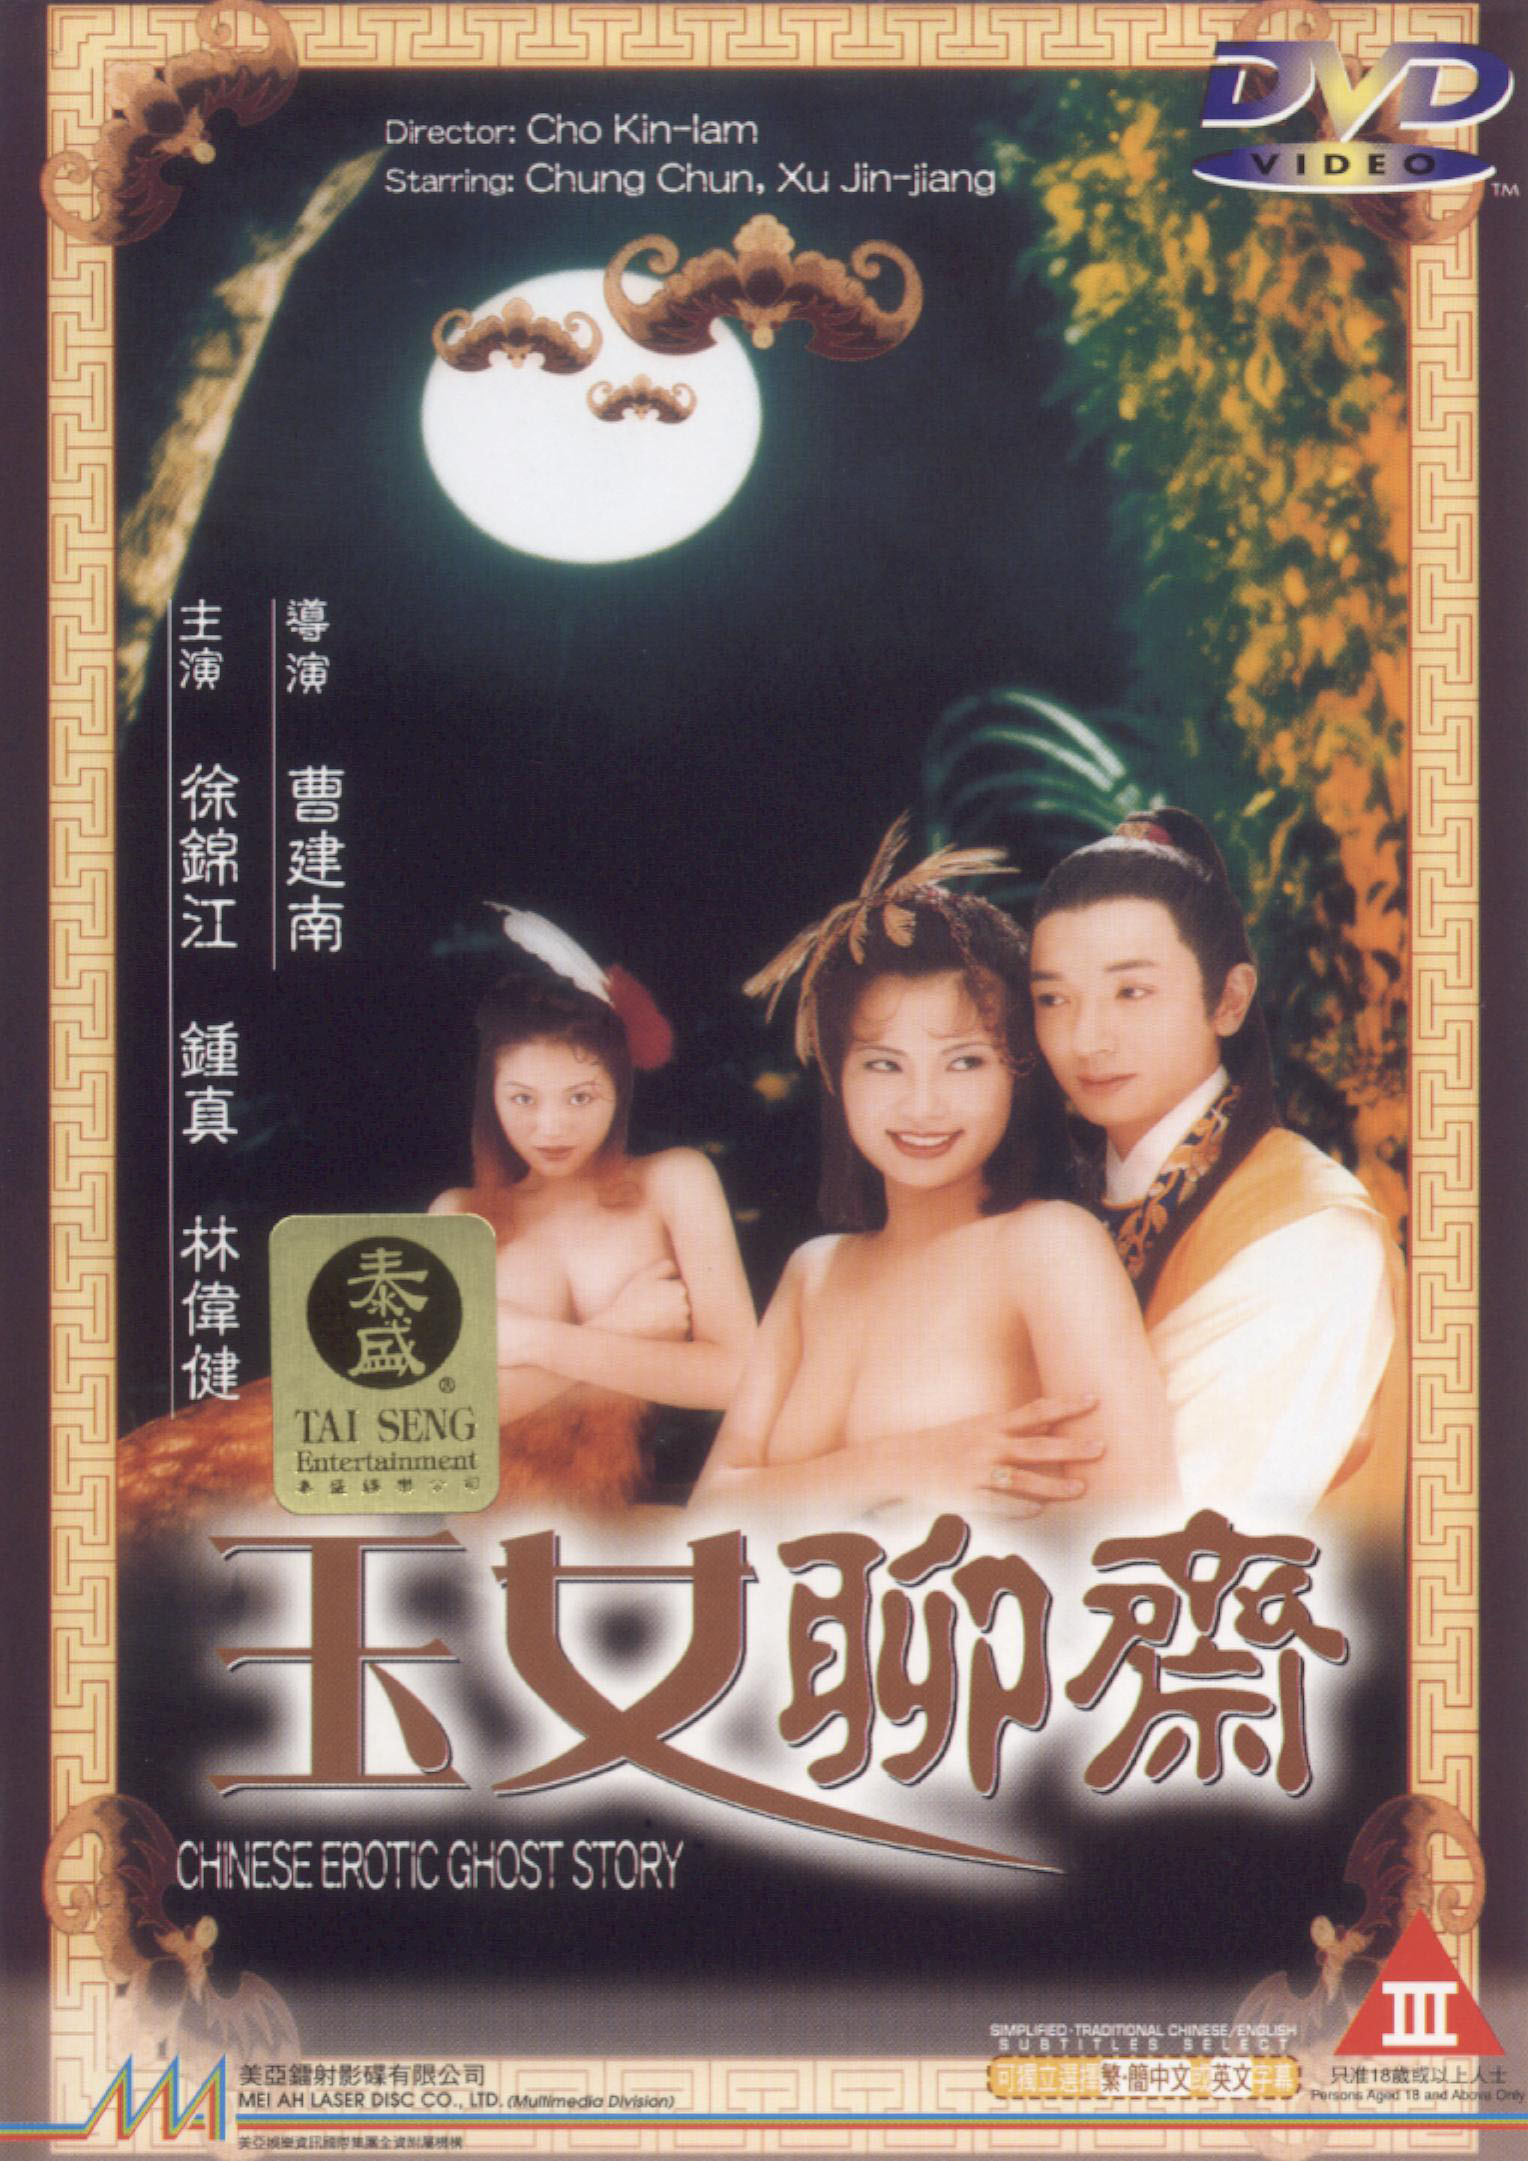 Chinese Erotic Ghost Story